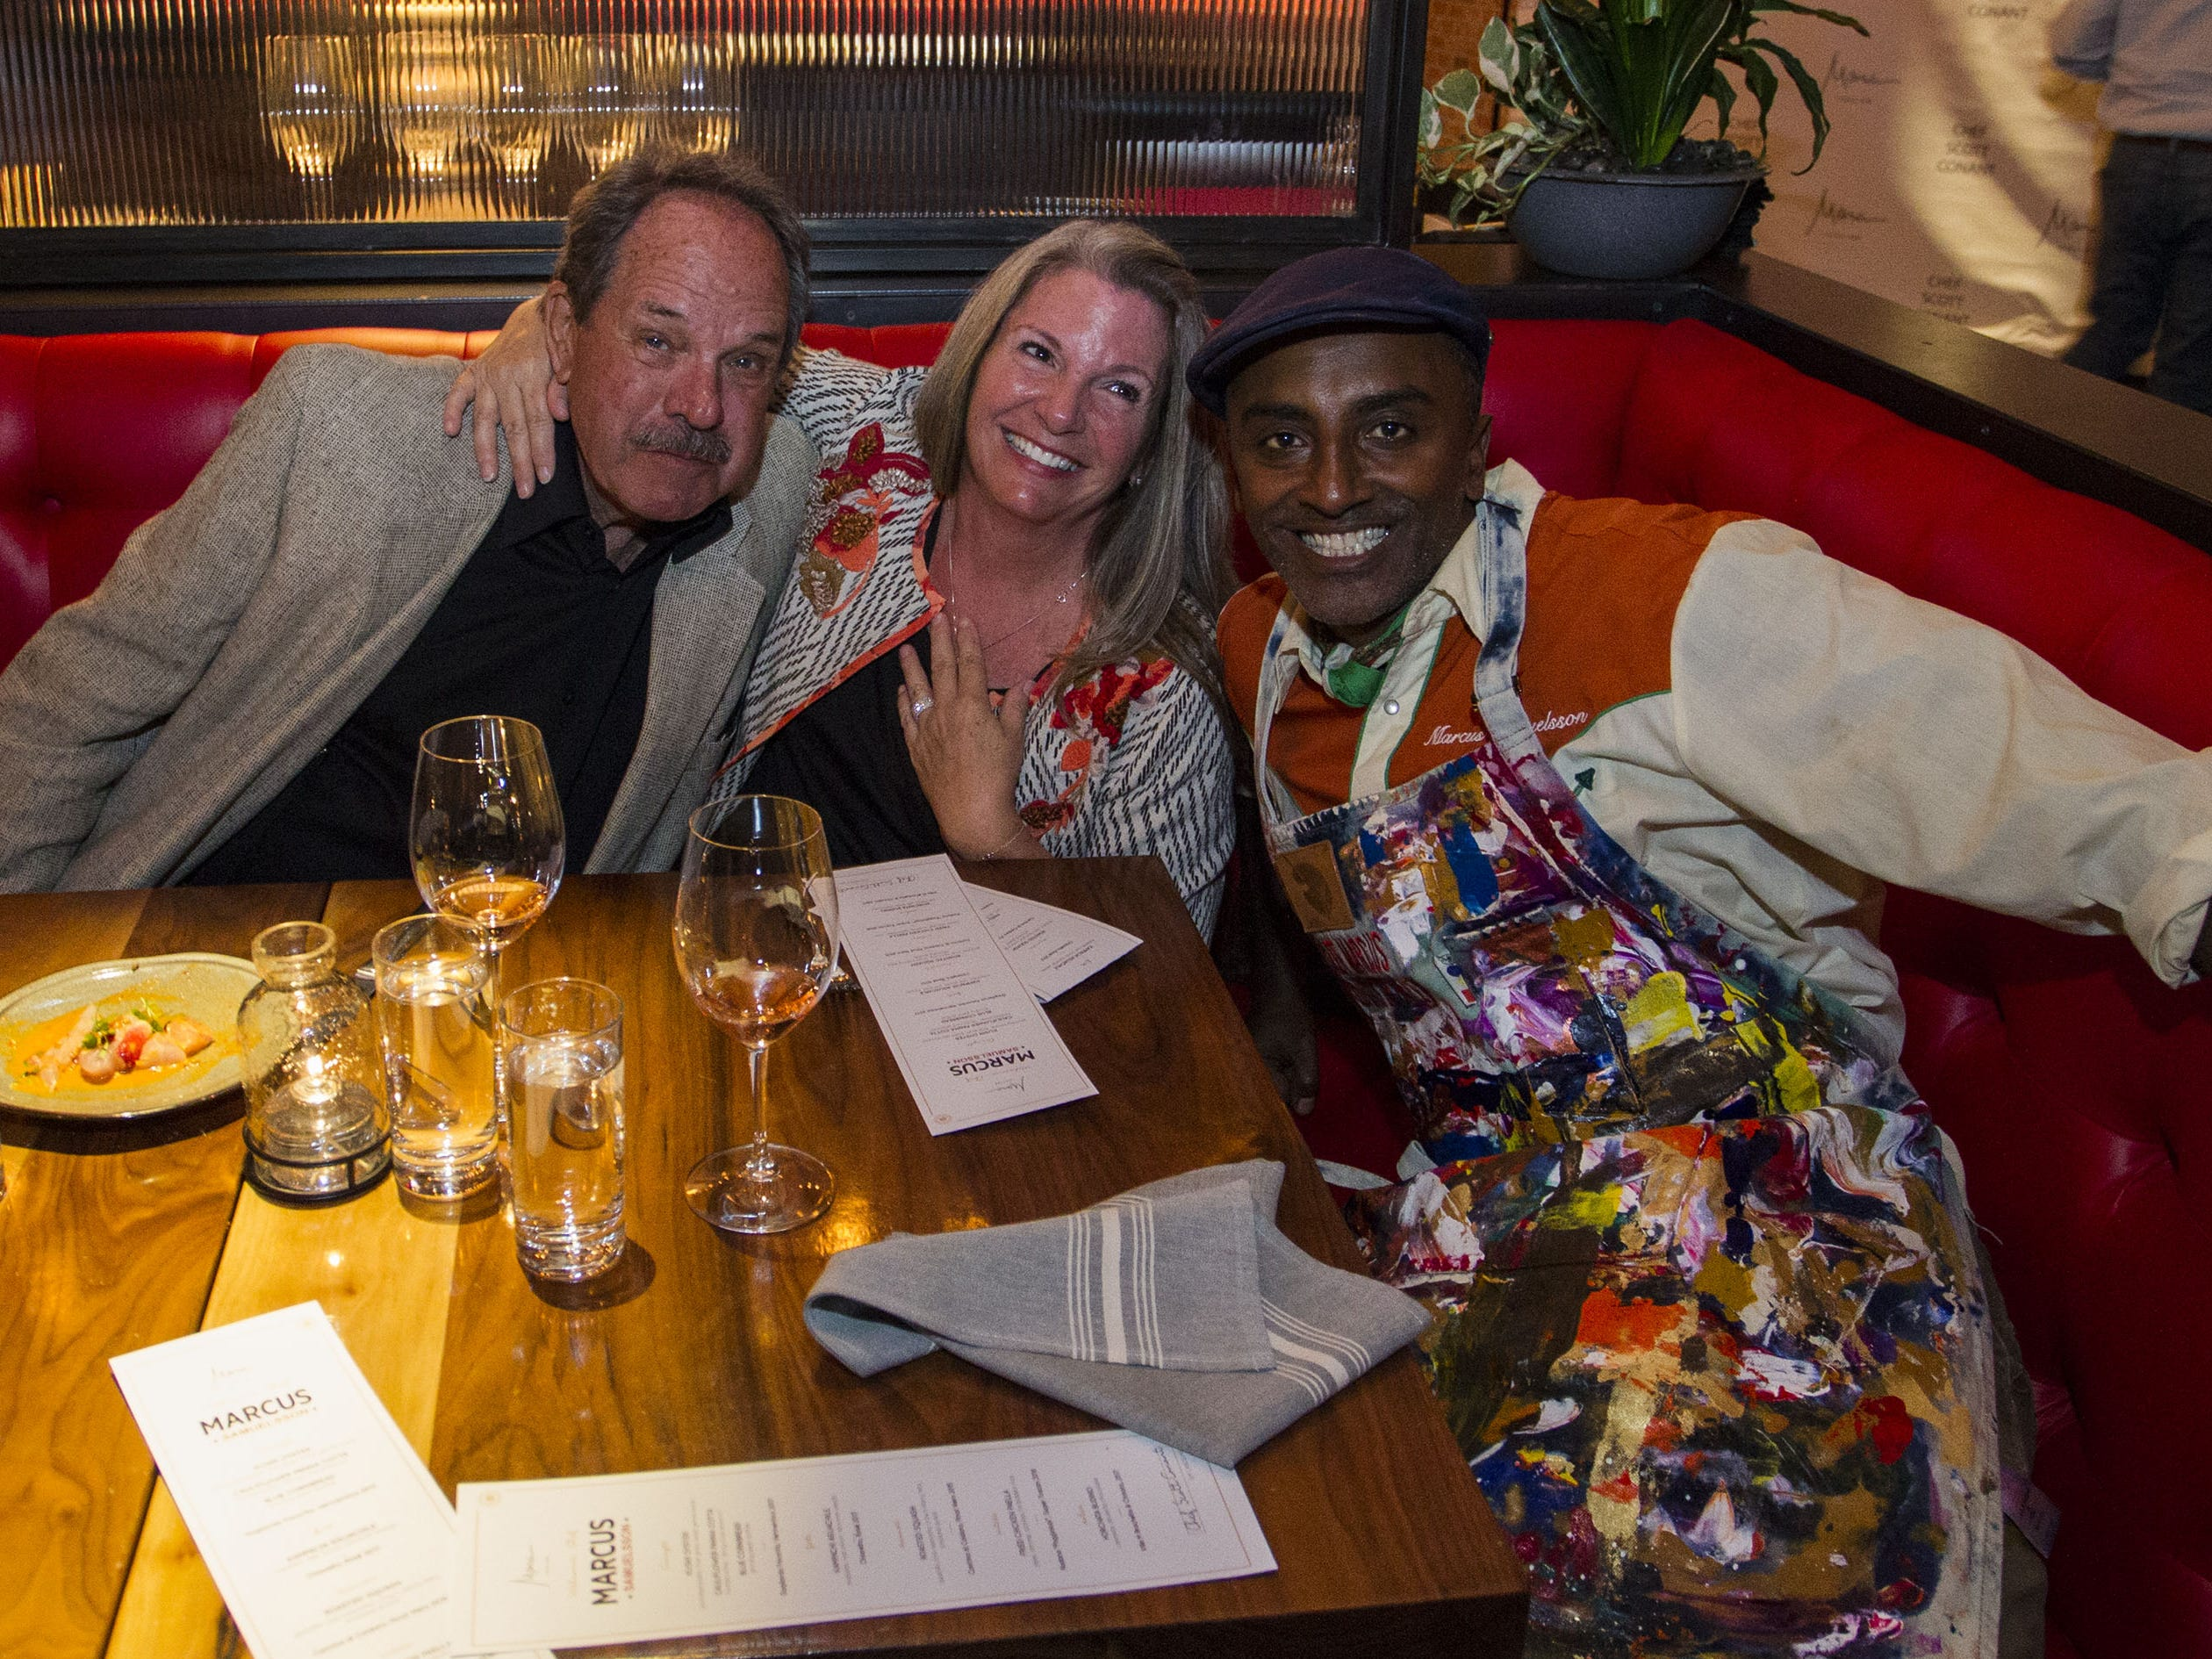 Chef Marcus Samuelsson poses with Andy and Margo Nottenkamper during the exclusive kickoff dining event at Mora Italian for azcentral Wine & Food Experience.